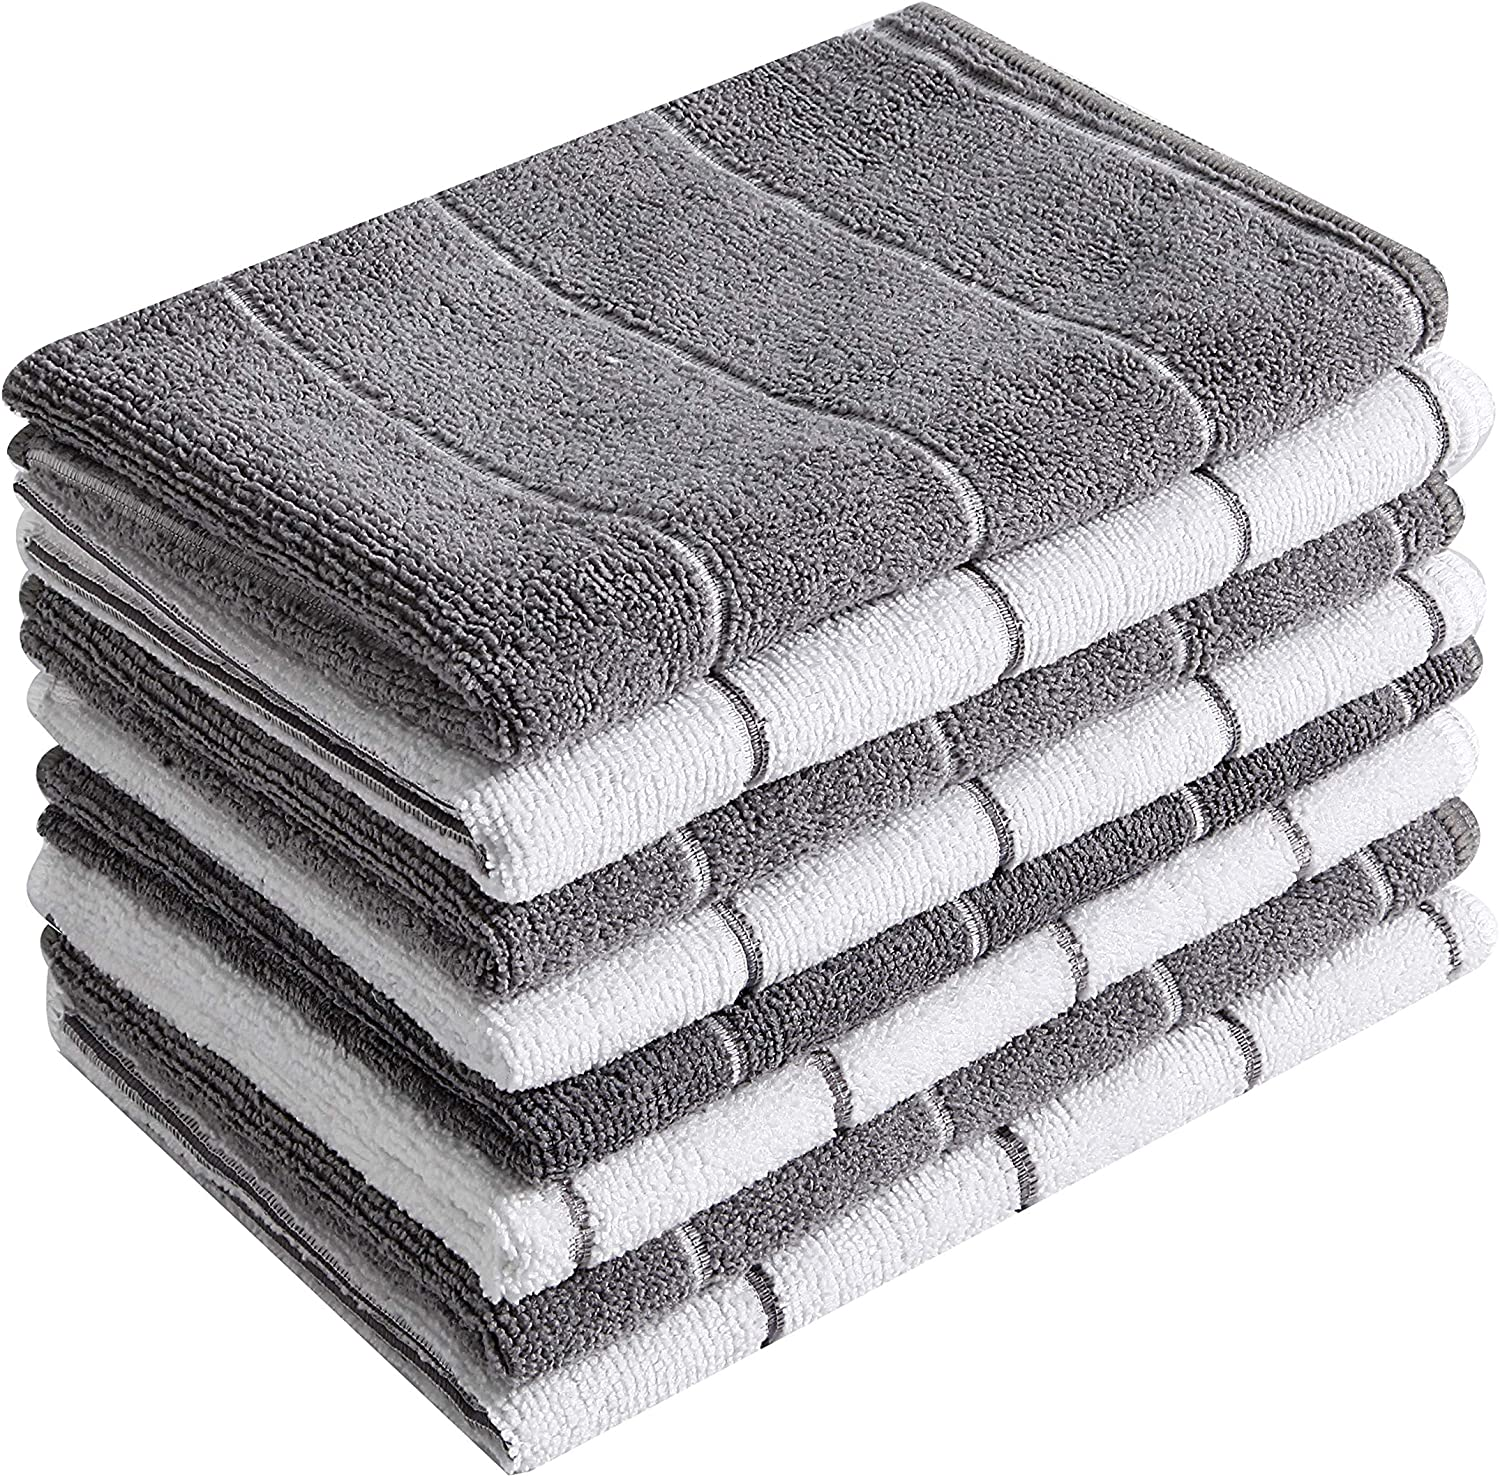 grey and white towel